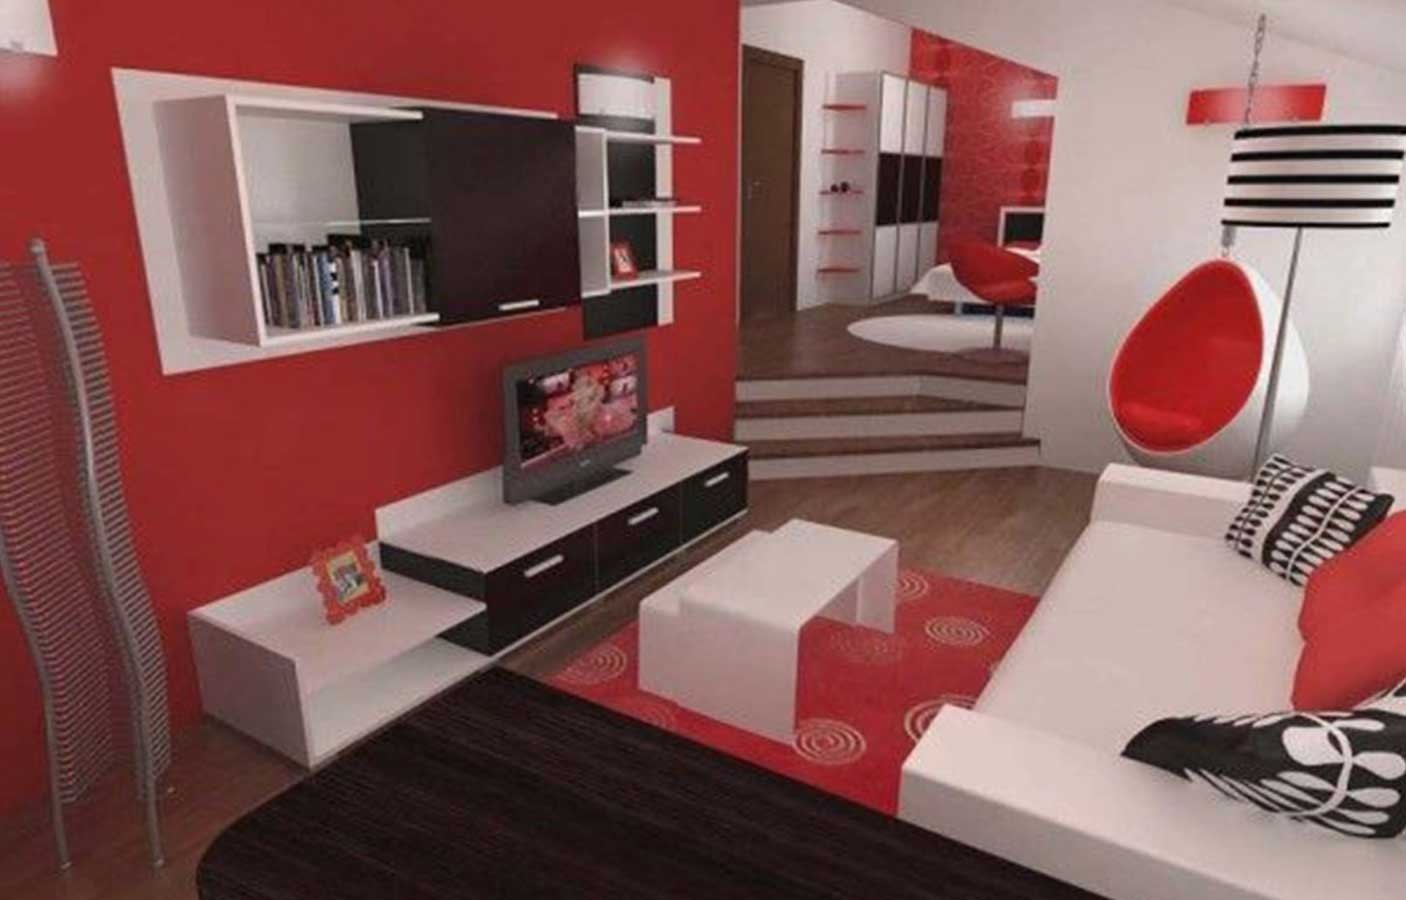 10 Trendy Red And Black Room Ideas red black and white living room decorating ideas home interior 2021